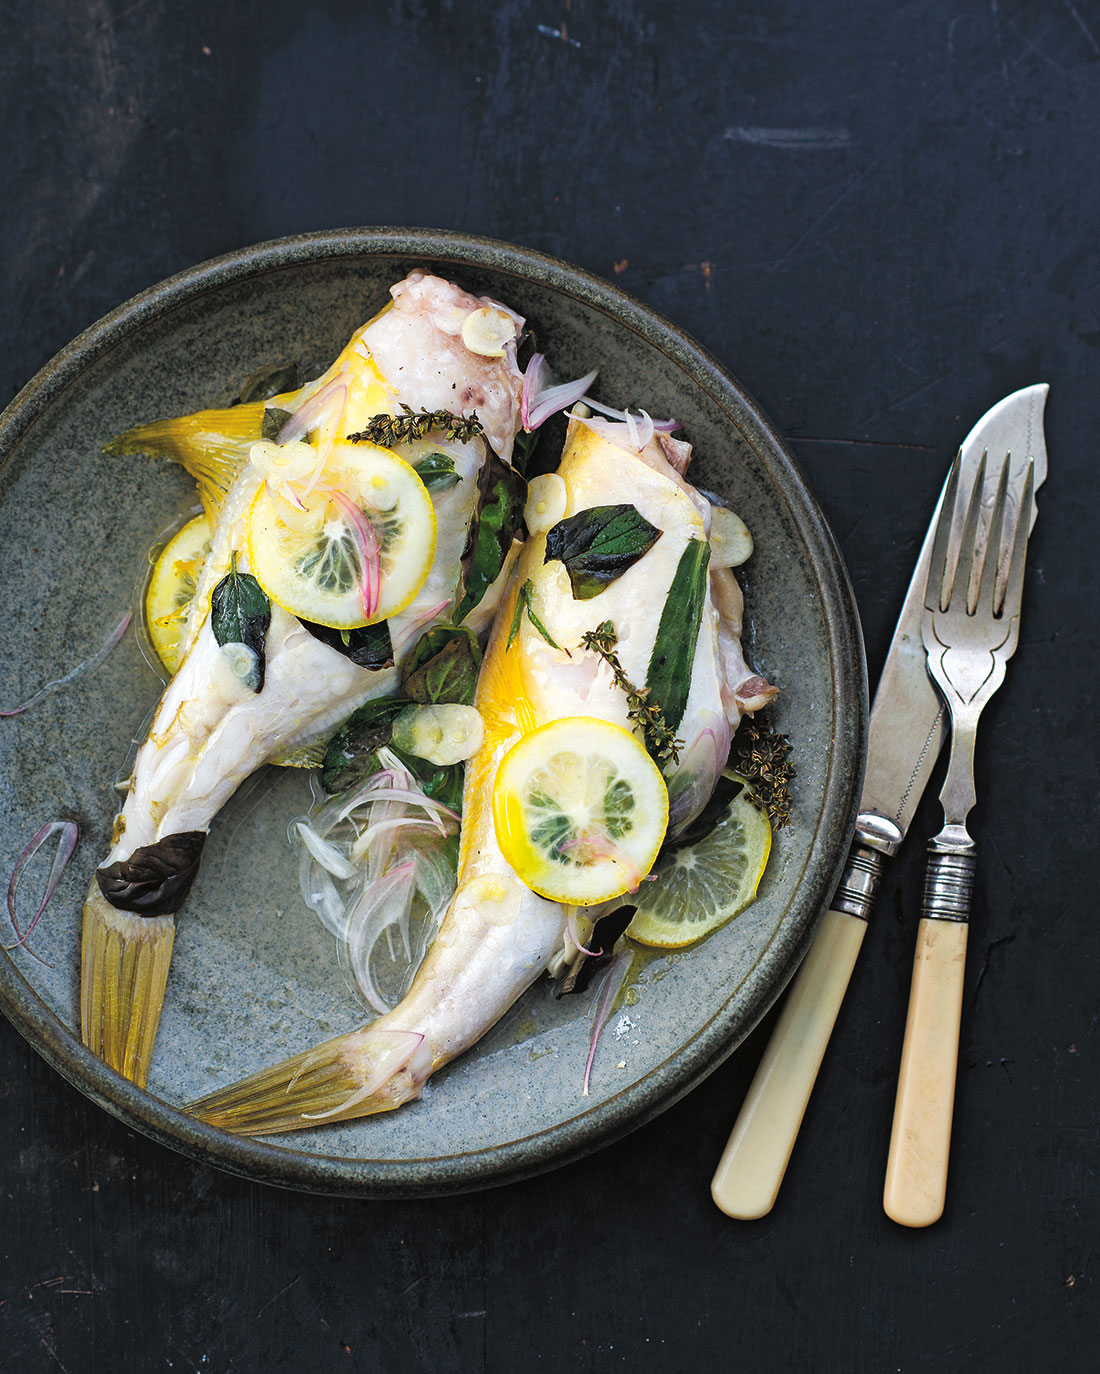 Whole baked leatherjacket with wine and herbs http www sbs com au food recipes whole baked leatherjacket wine and herbs